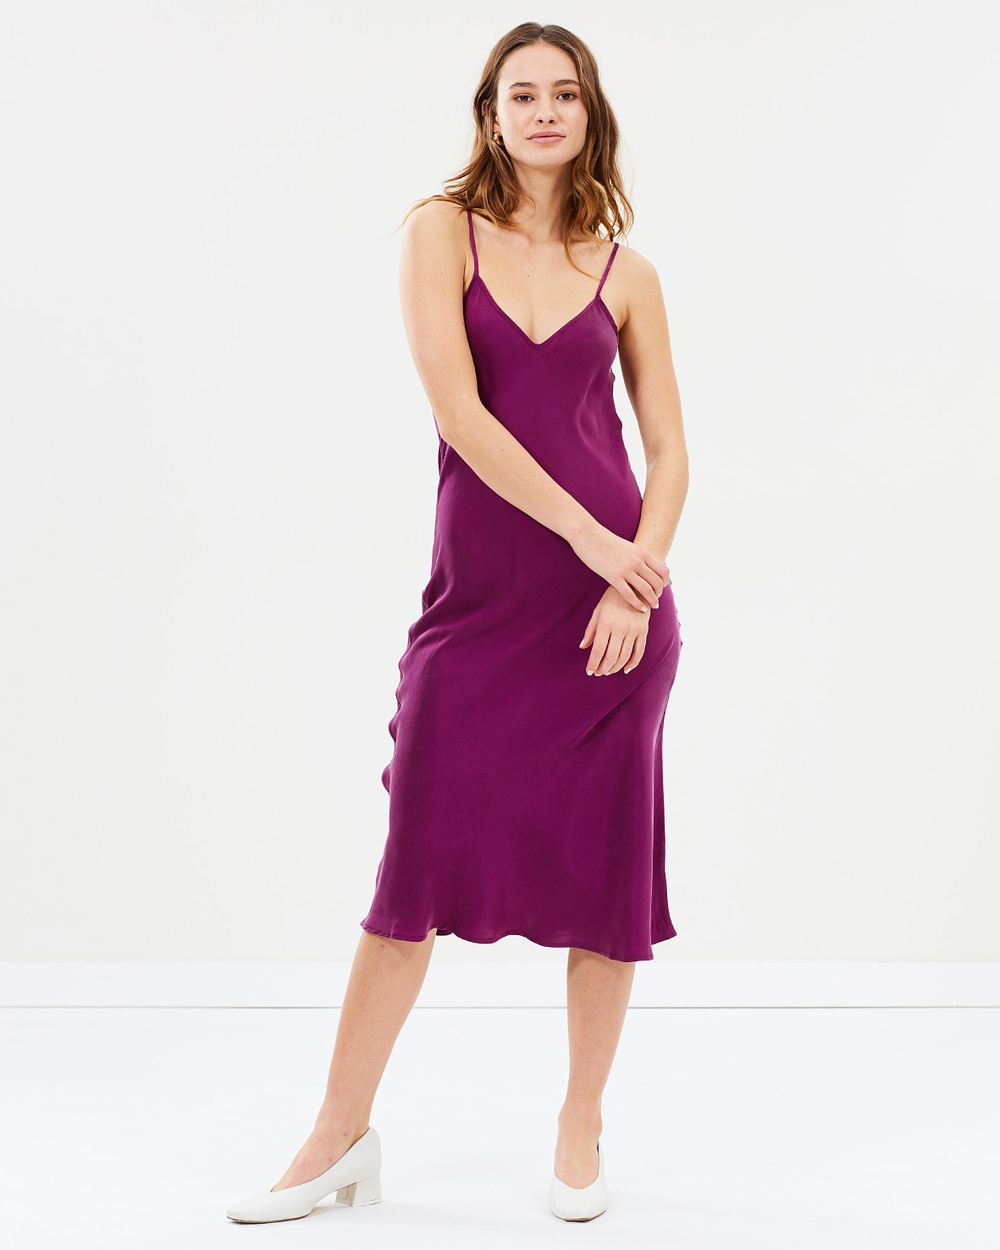 Silk Laundry 90s Silk Slip Dress Dresses Burnt Violet 90s Silk Slip Dress